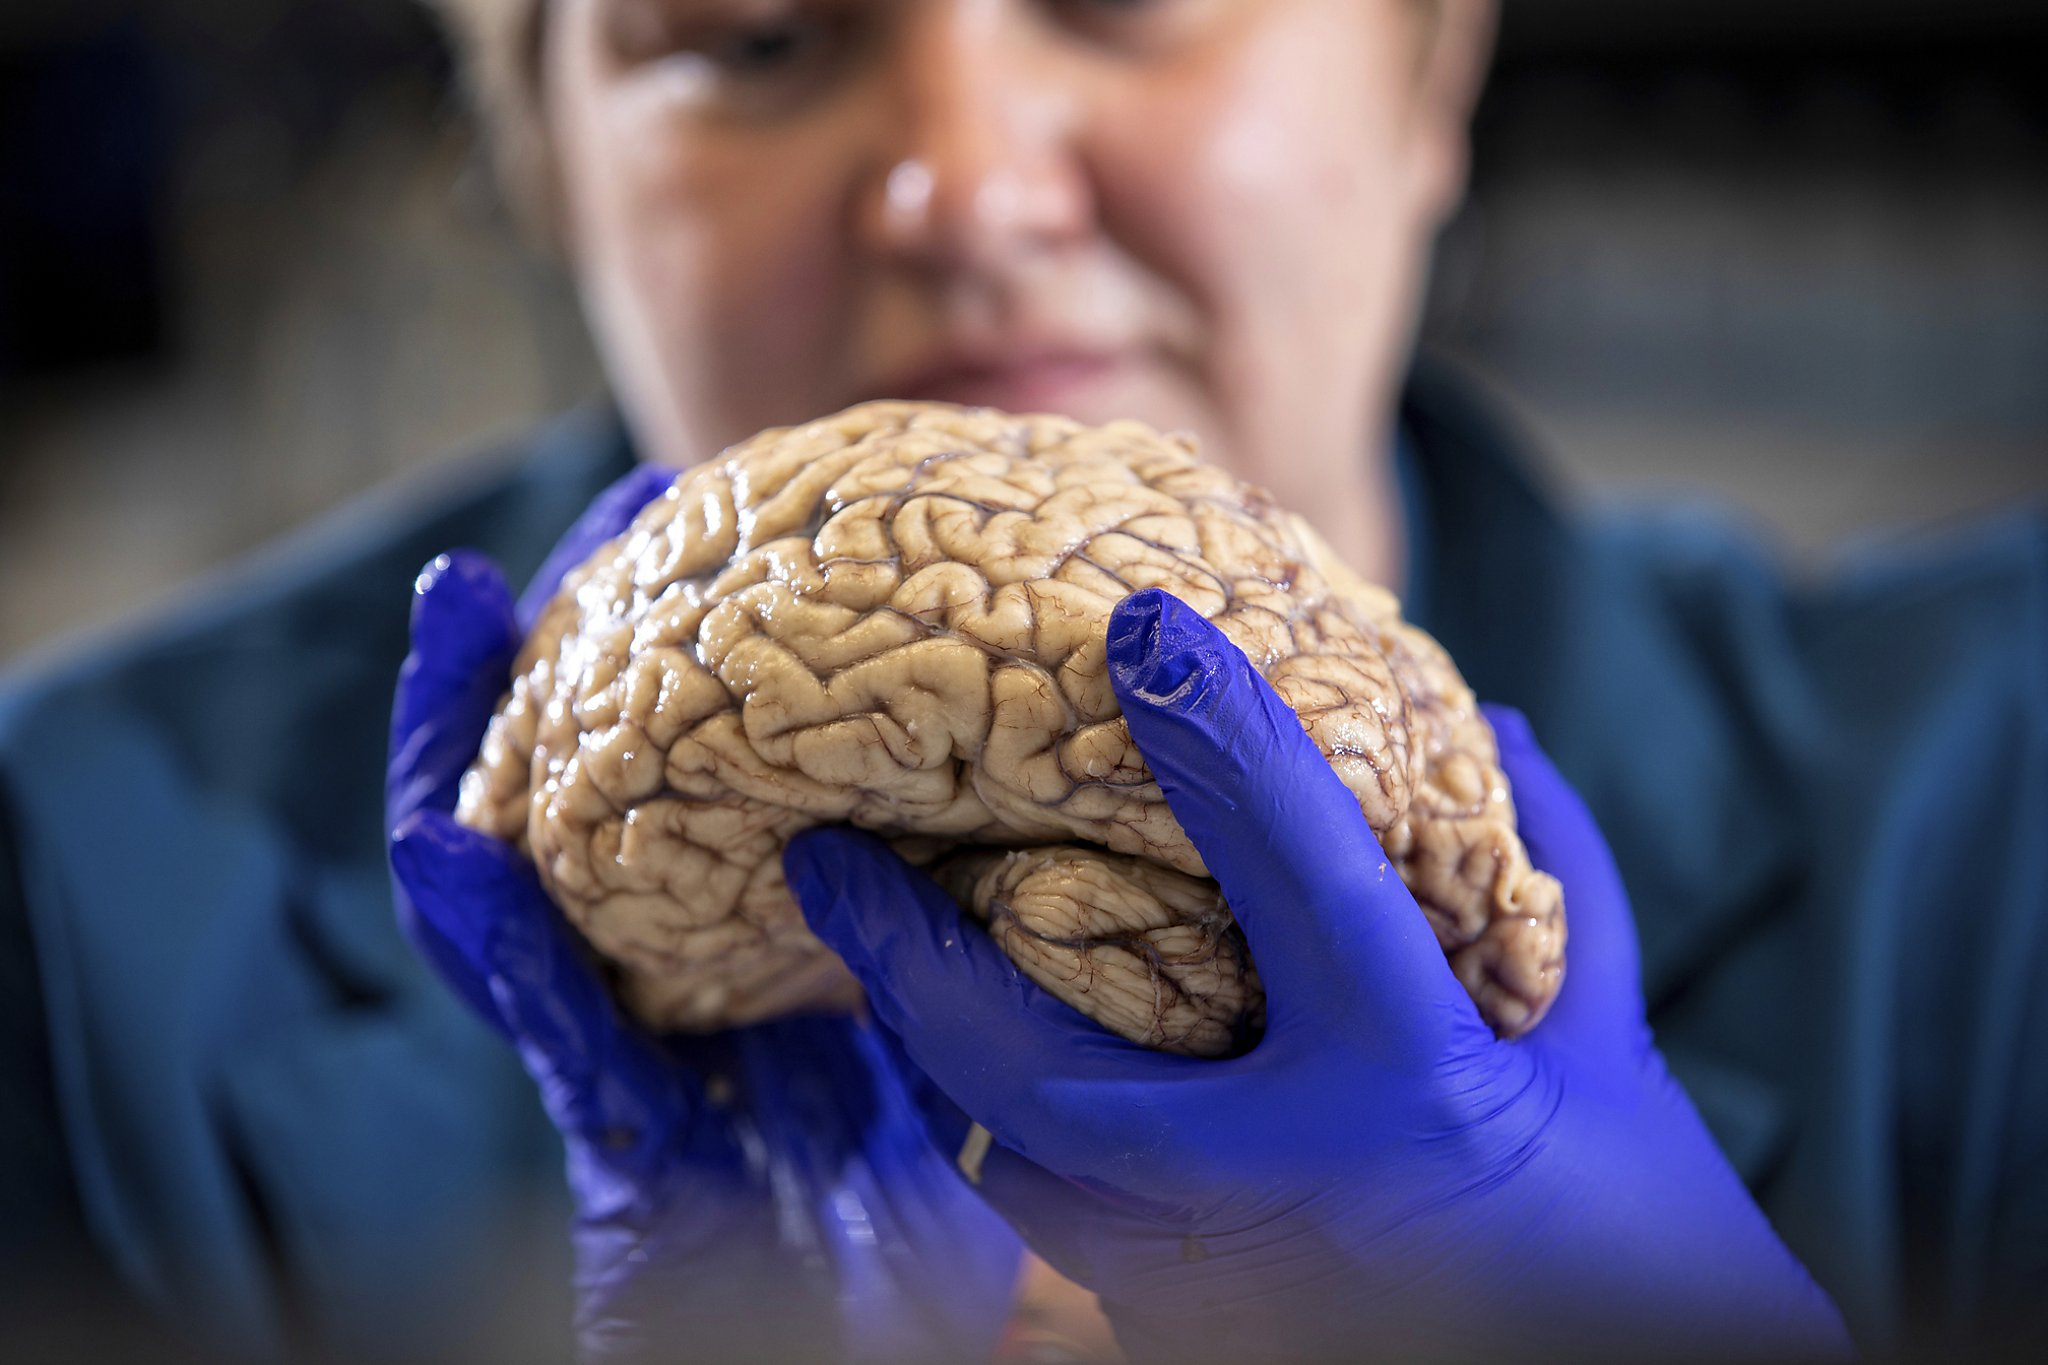 Scientists rethink Alzheimer's, diversifying approach